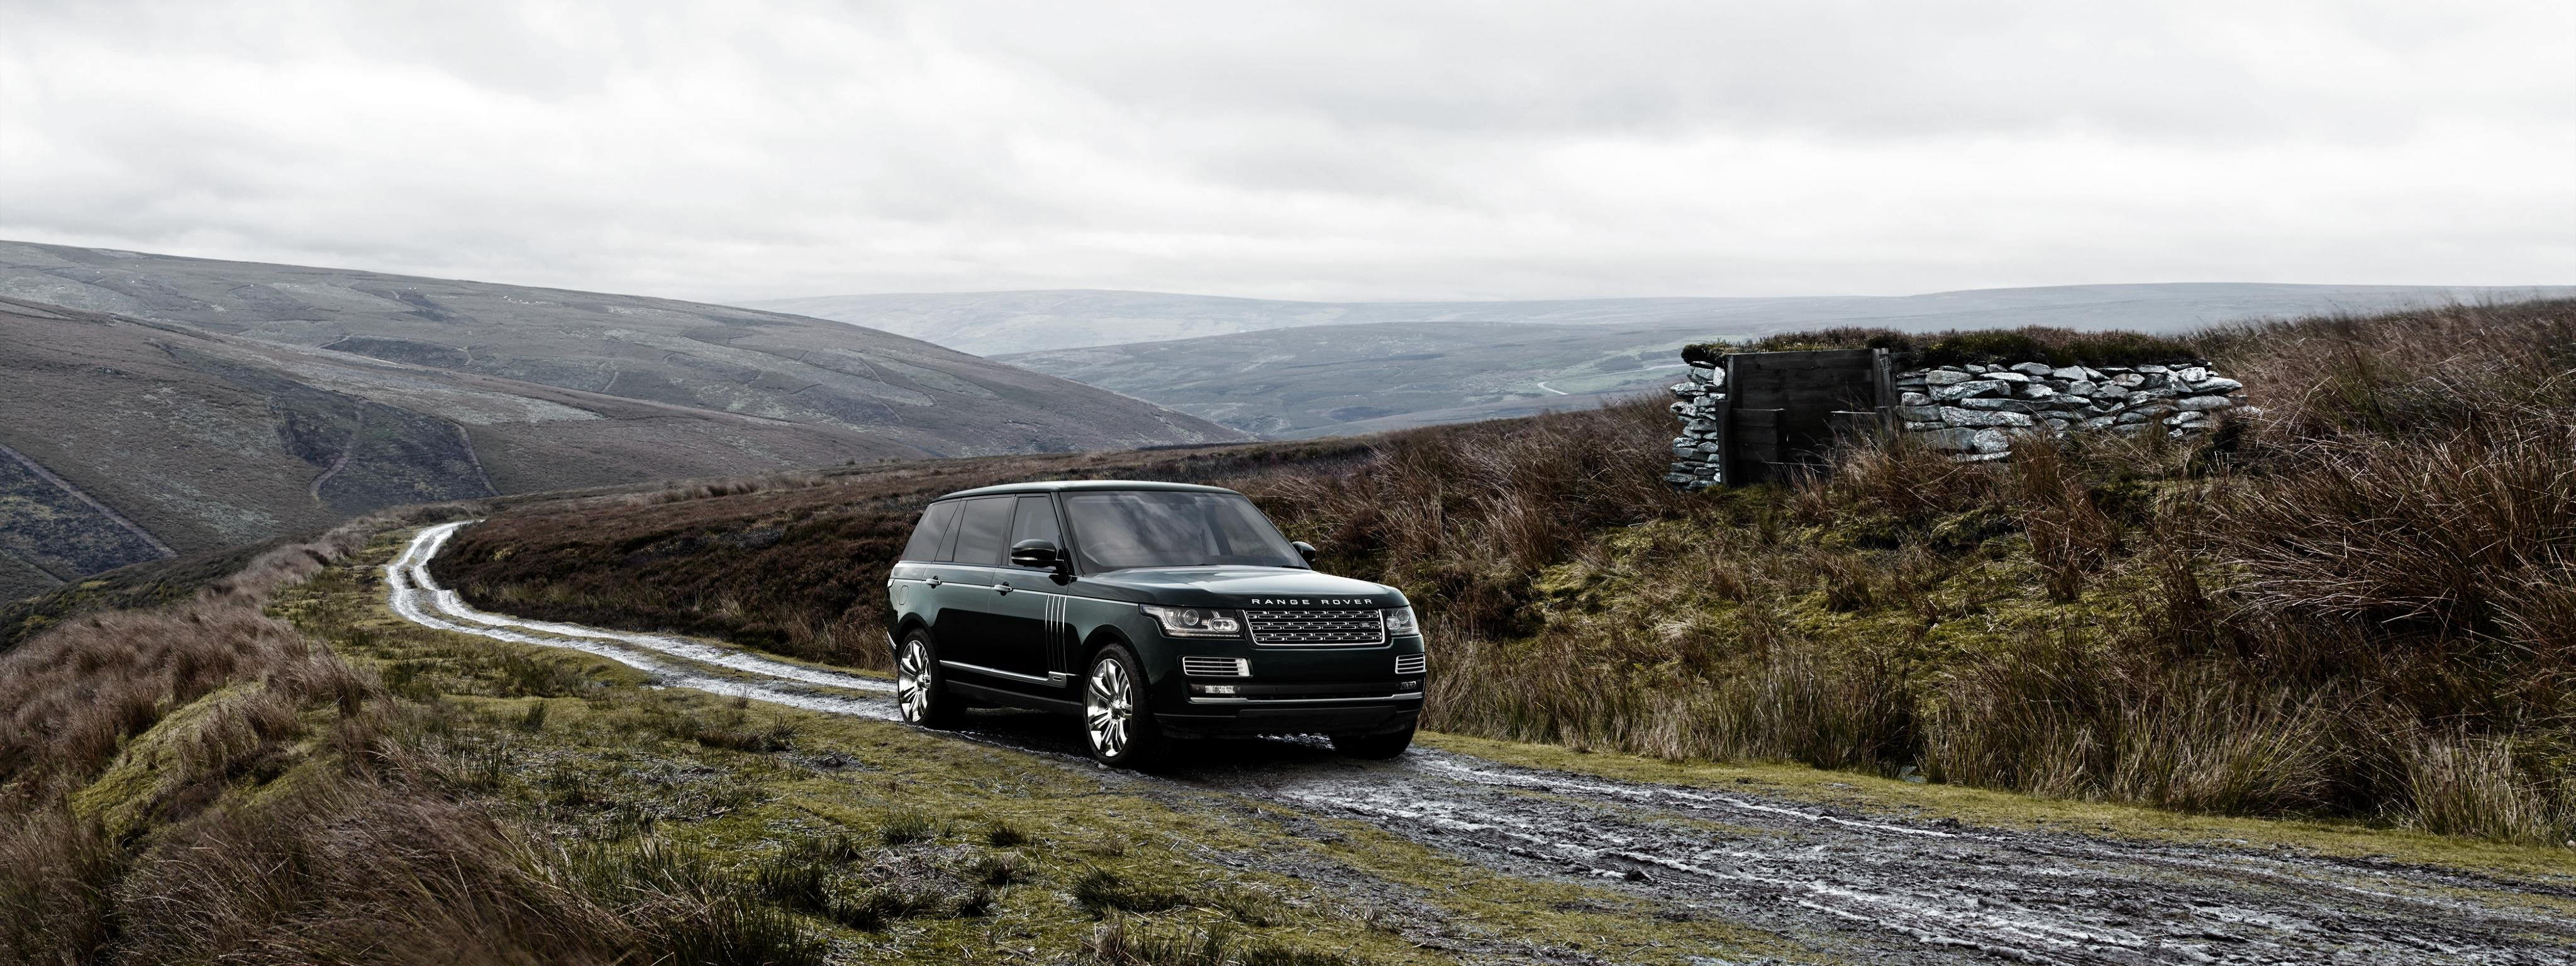 Awesome Range Rover free background ID:162861 for dual screen 4096x1536 desktop